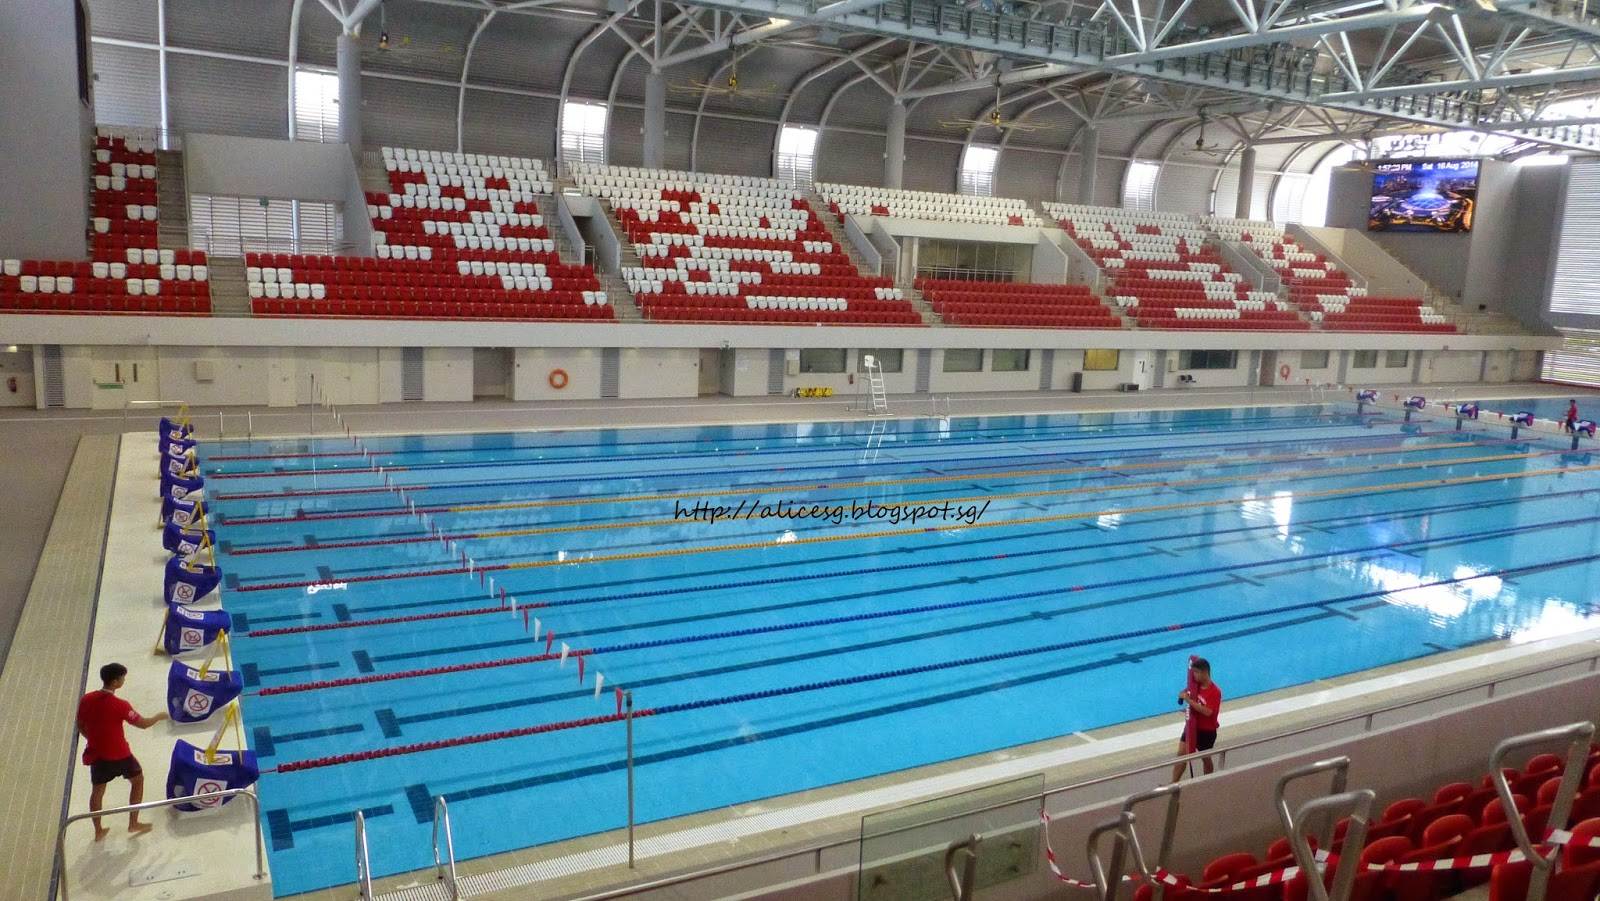 Alicesg Singaporemyhome Singapore Sports Hub Swimming Pool Library And Playground